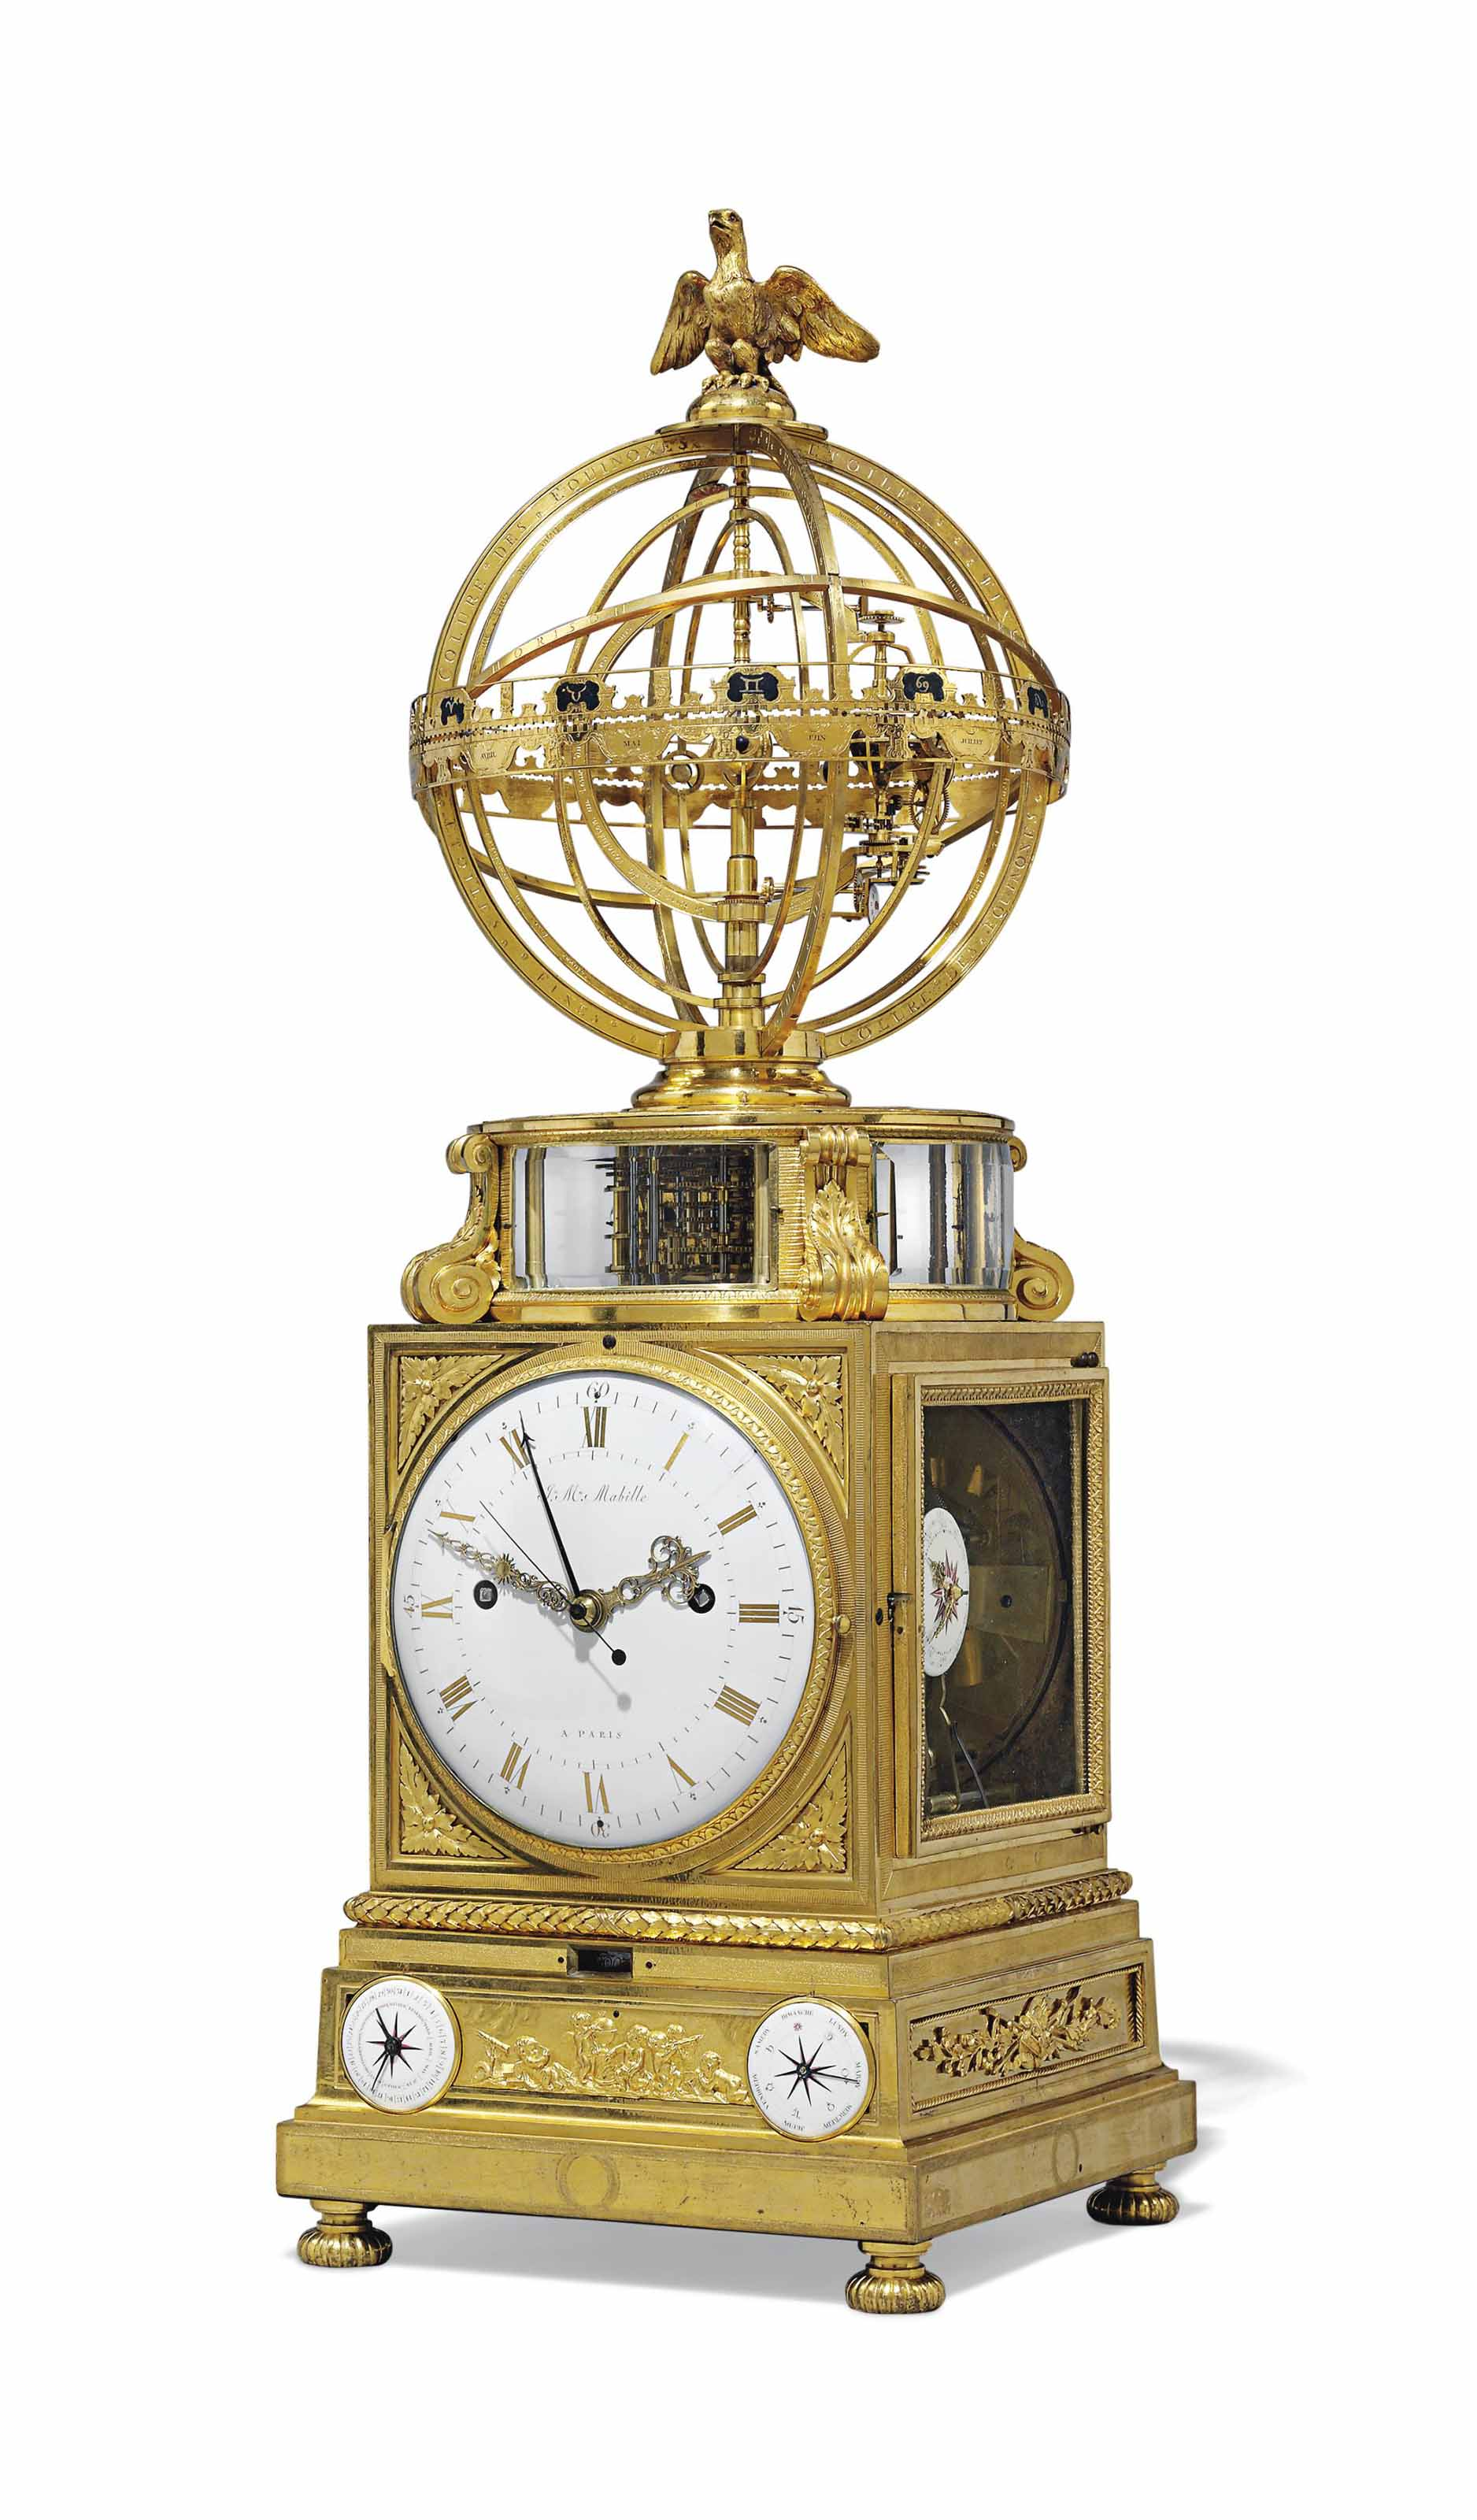 A LOUIS XVI ORMOLU STRIKING TABLE CLOCK WITH CALENDAR, MOONPHASE, EQUATION OF TIME AND TERRESTRIAL 'SPHERE MOUVANTE'